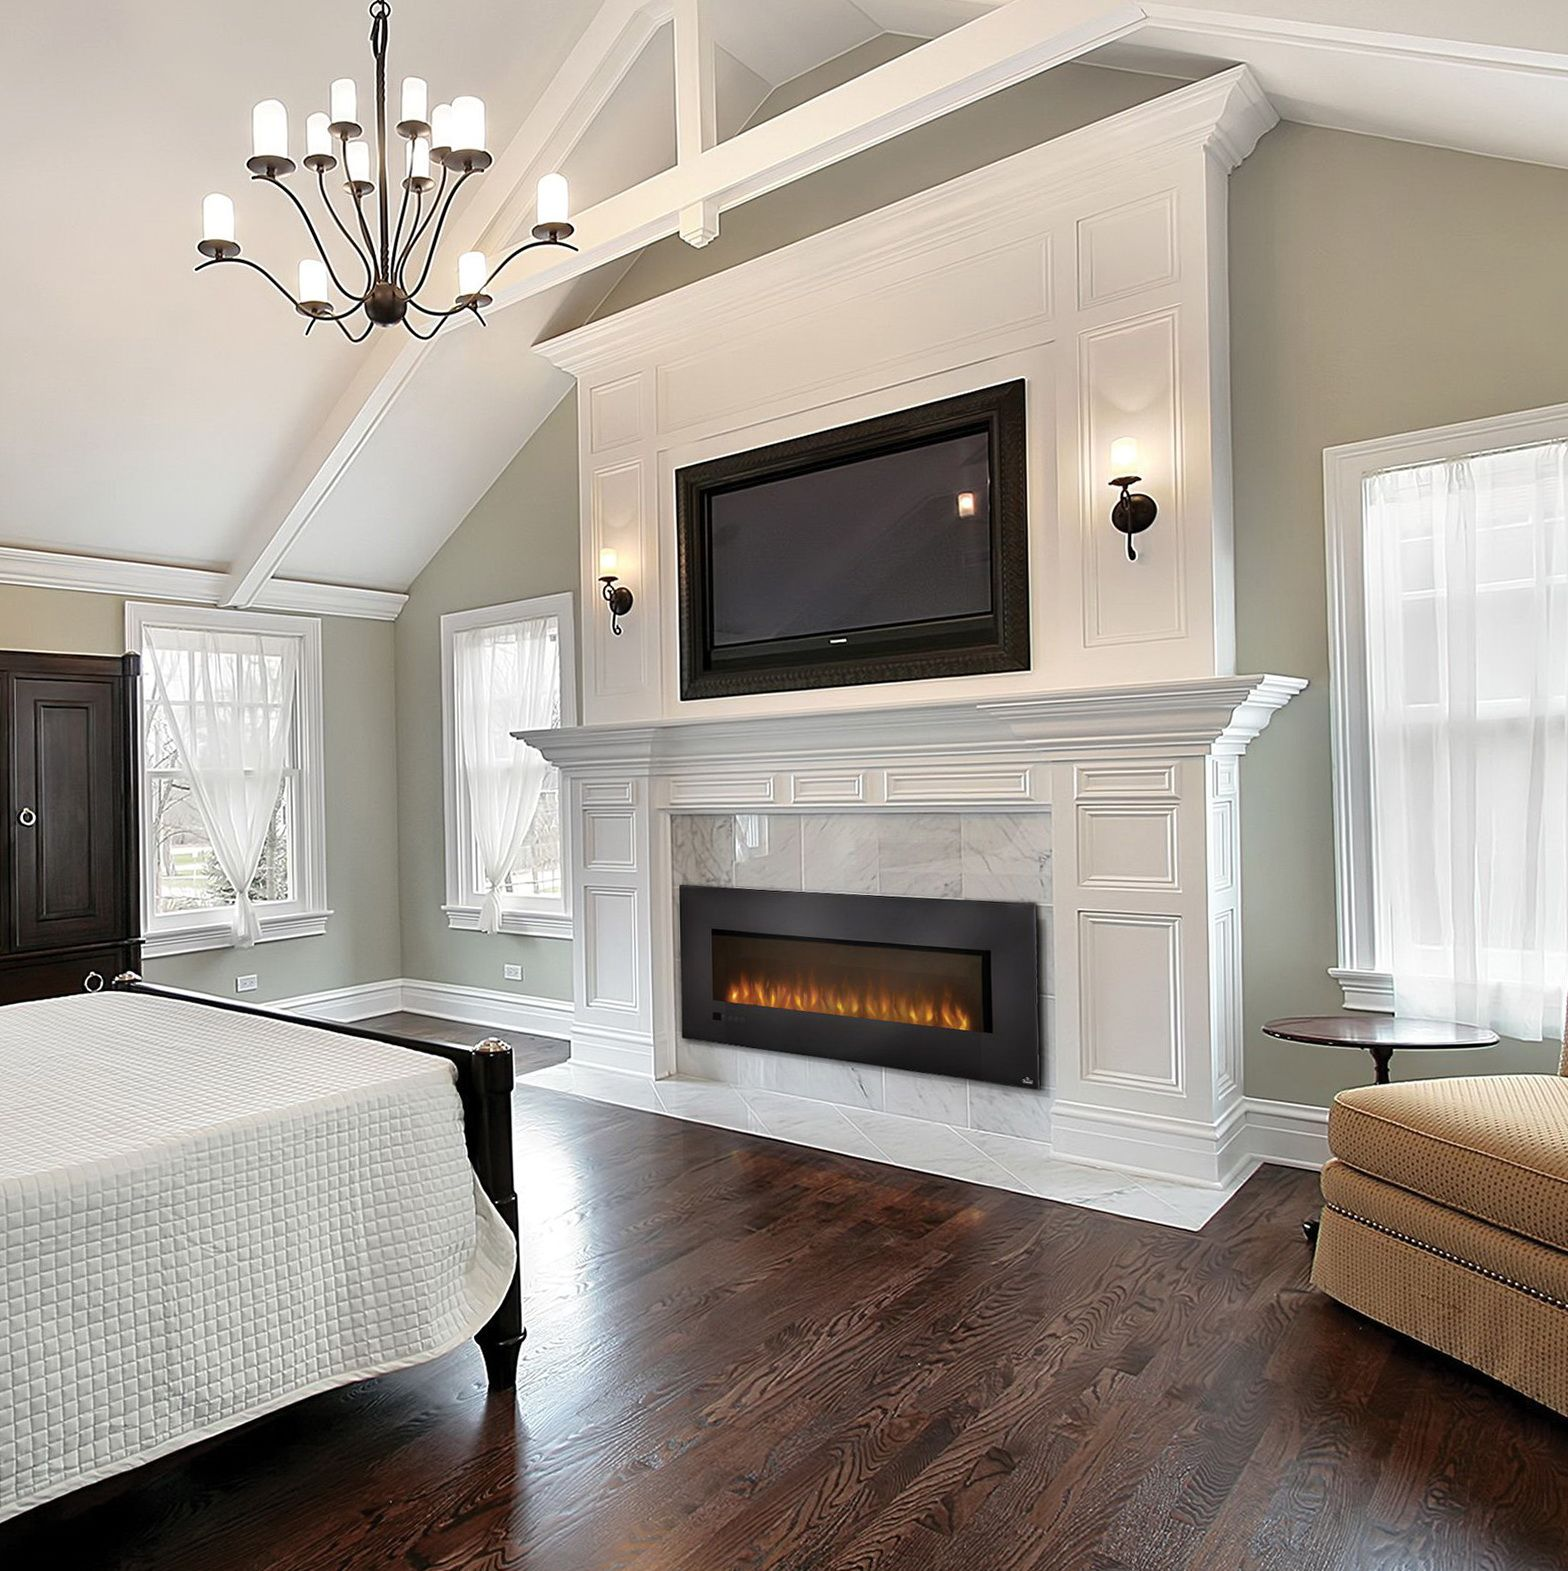 Bedroom electric fireplace - Large Electric Fireplace Insert